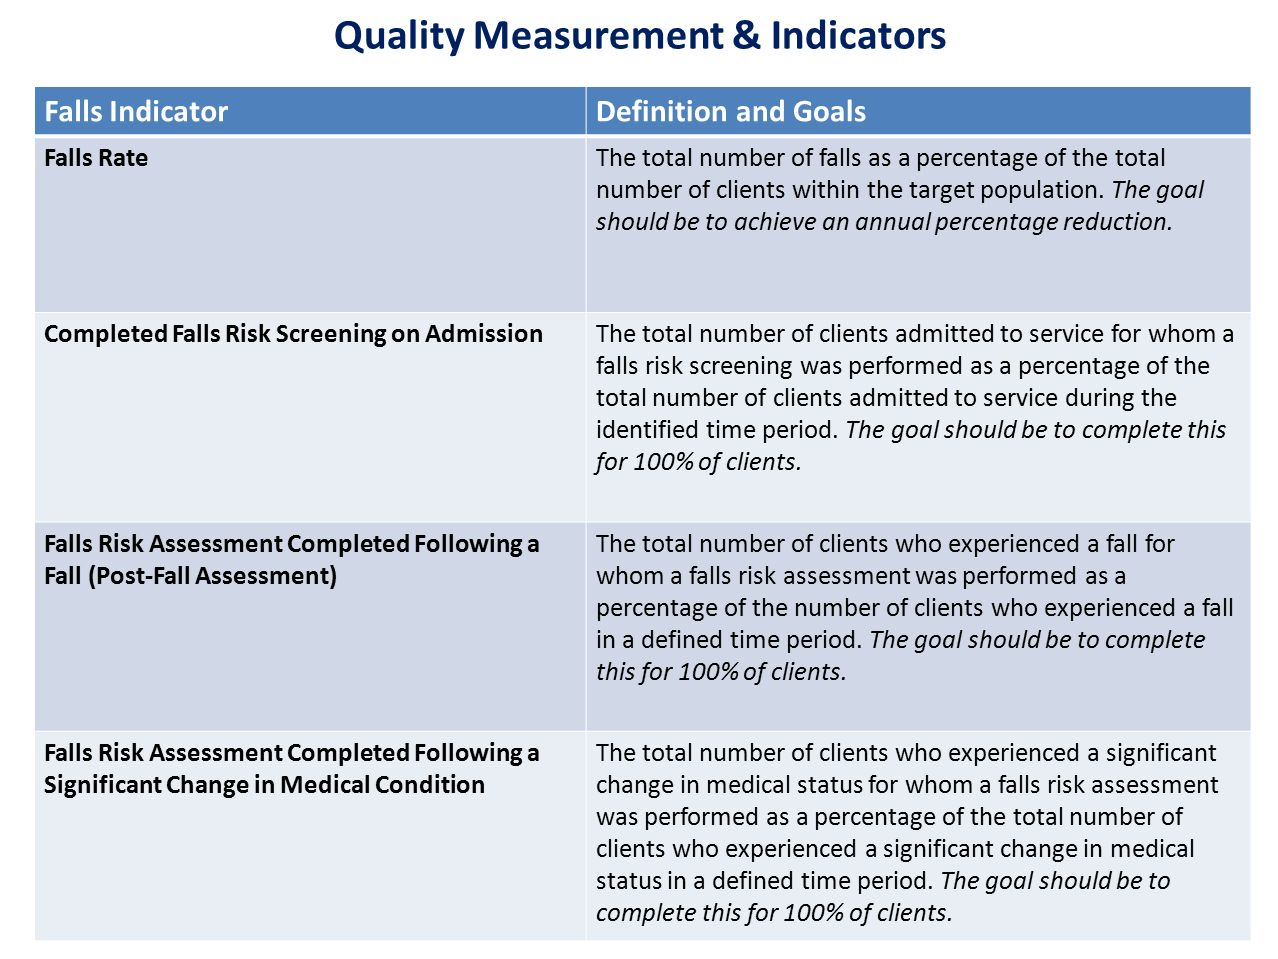 Quality Measurement & Indicators